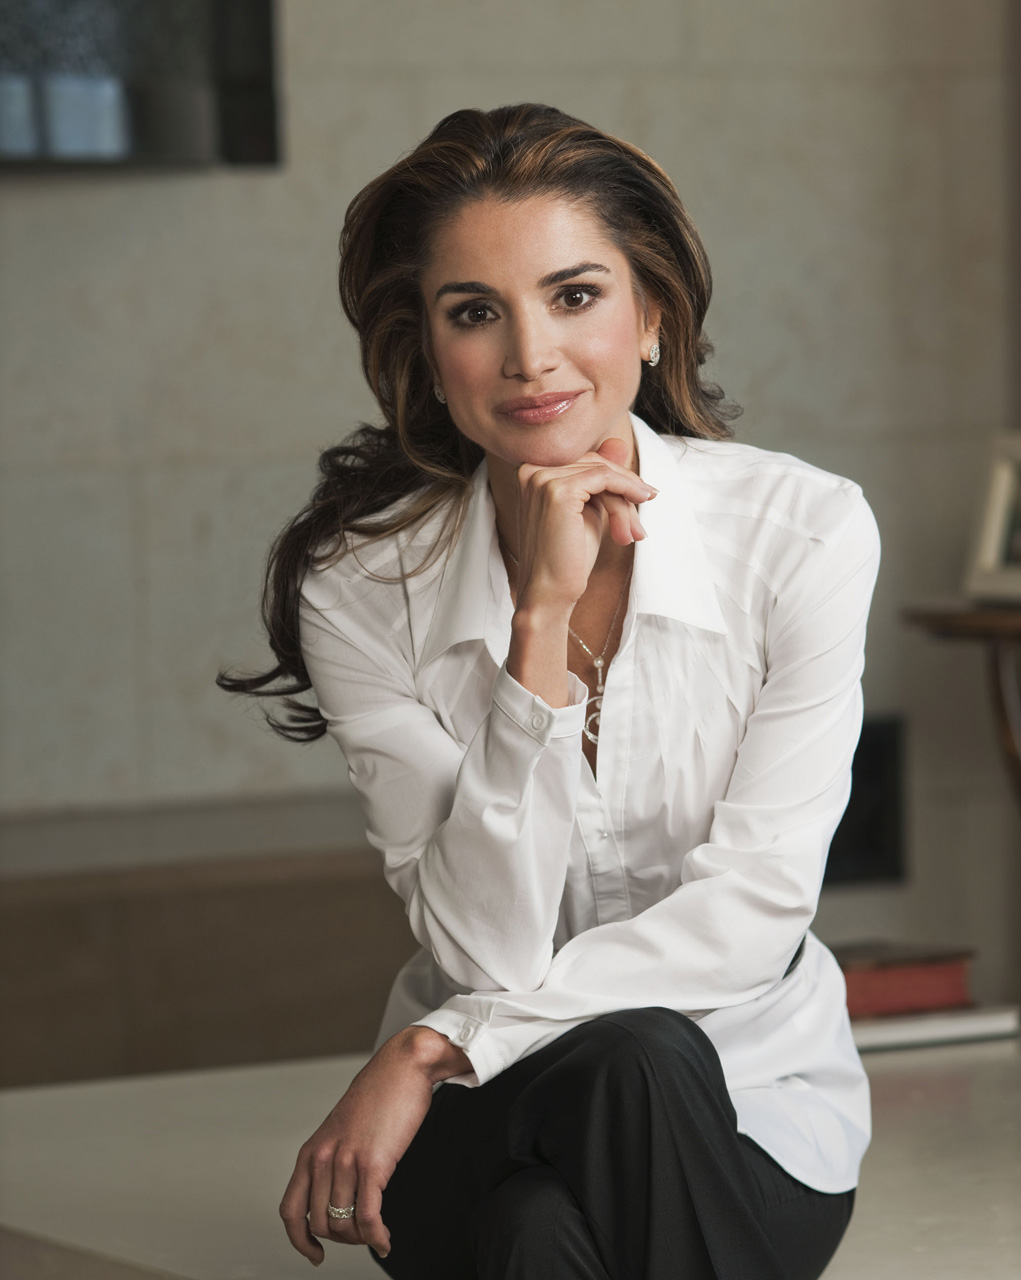 Queen Rania's Makeup, Beauty And Fitness Secrets Revealed